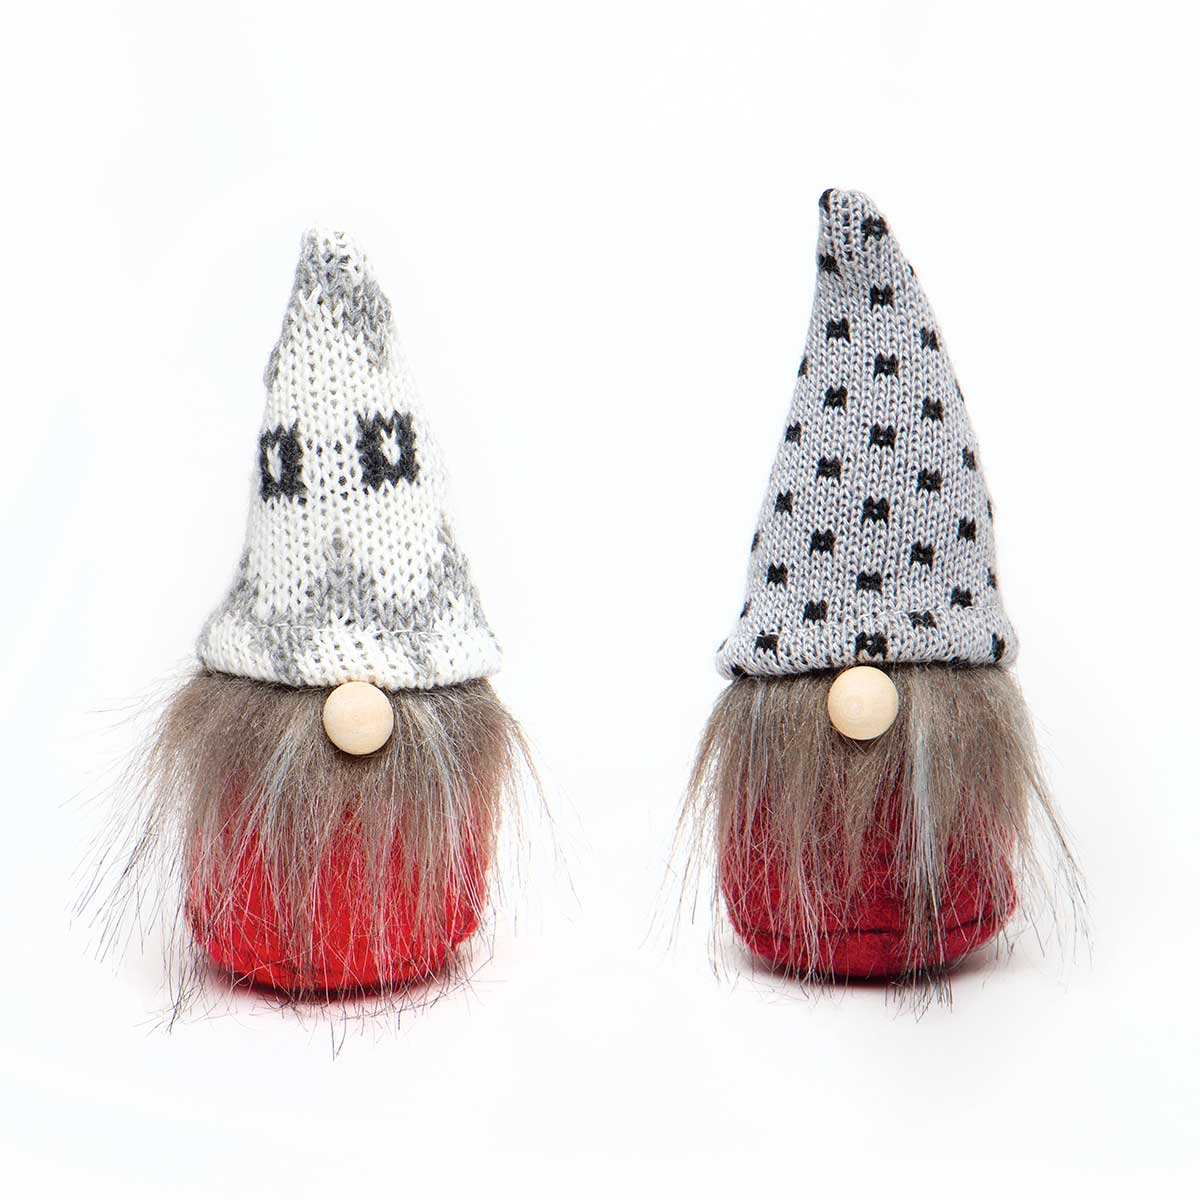 WEE GNOME ORNAMENT RED/GREY WITH PINDOT/PATTERN